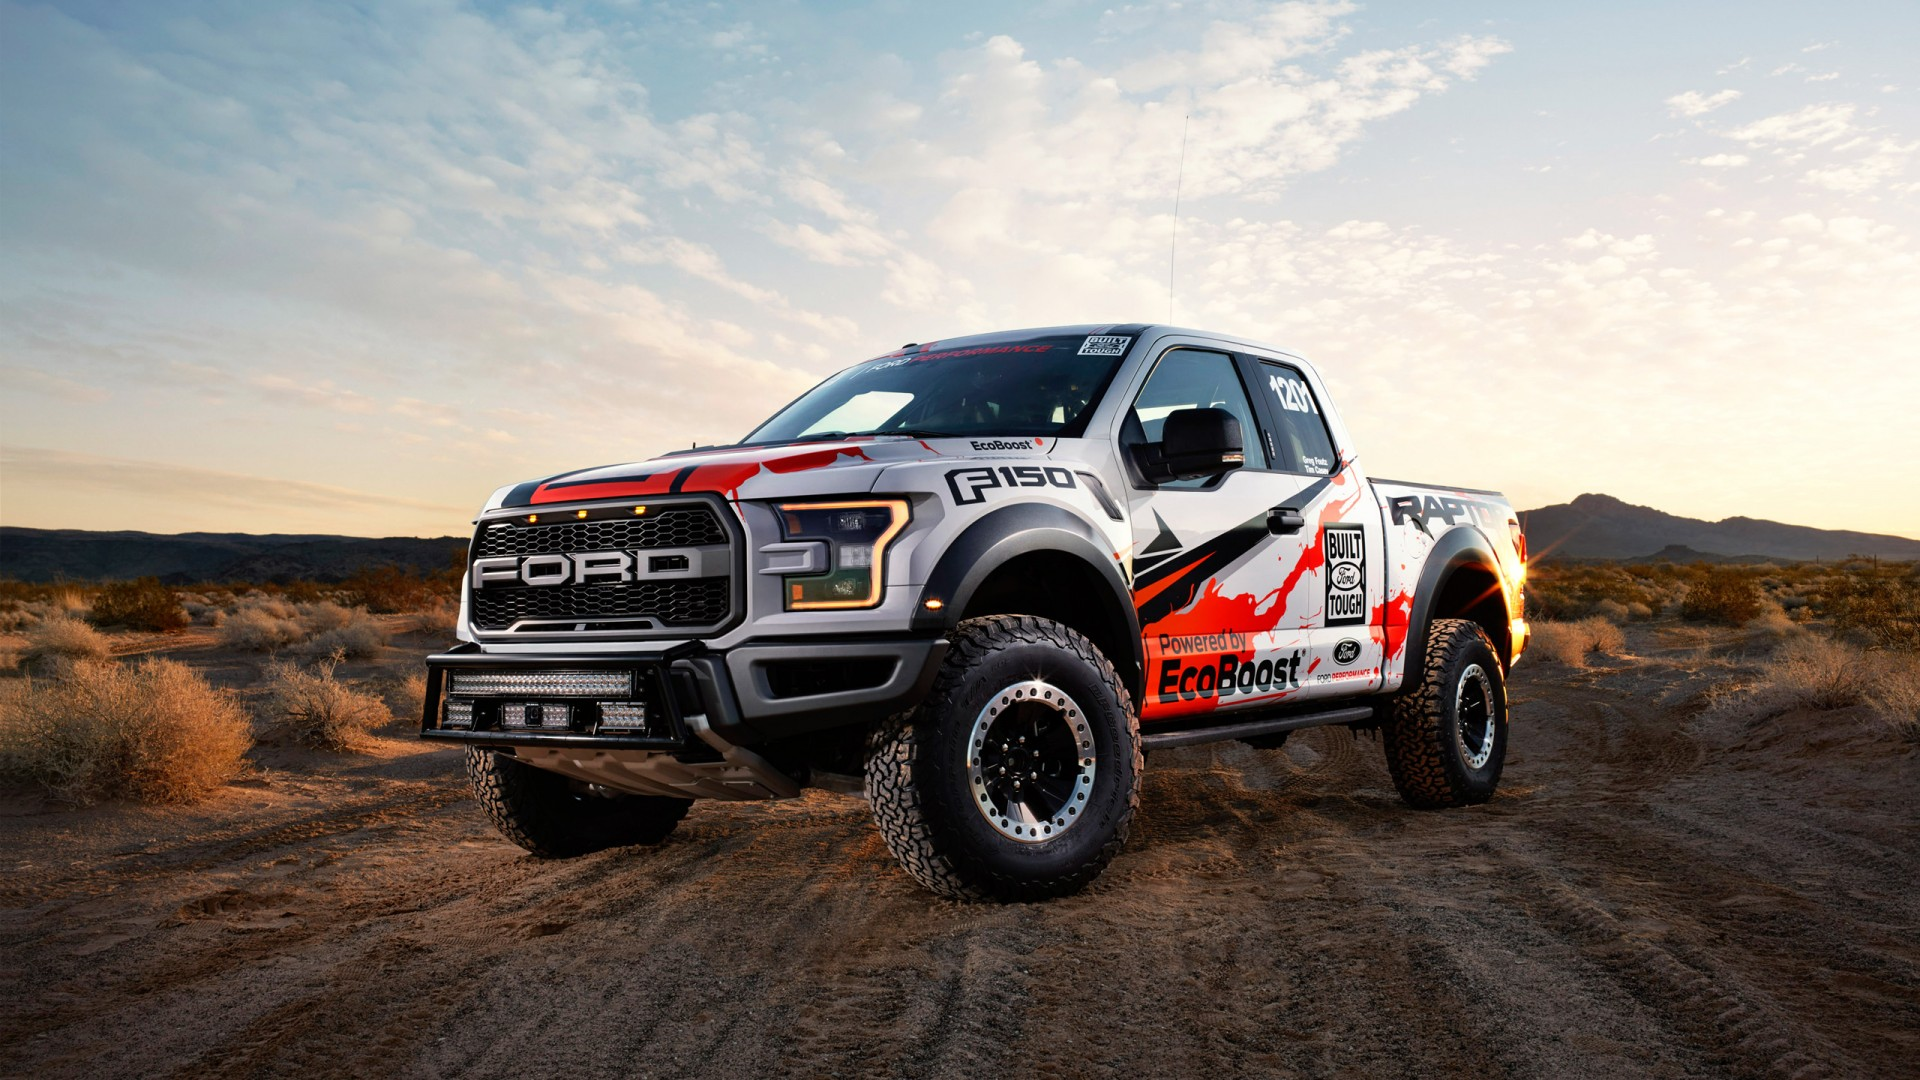 Ford F 150 Raptor 2016 Wallpapers HD Wallpapers ID 17843